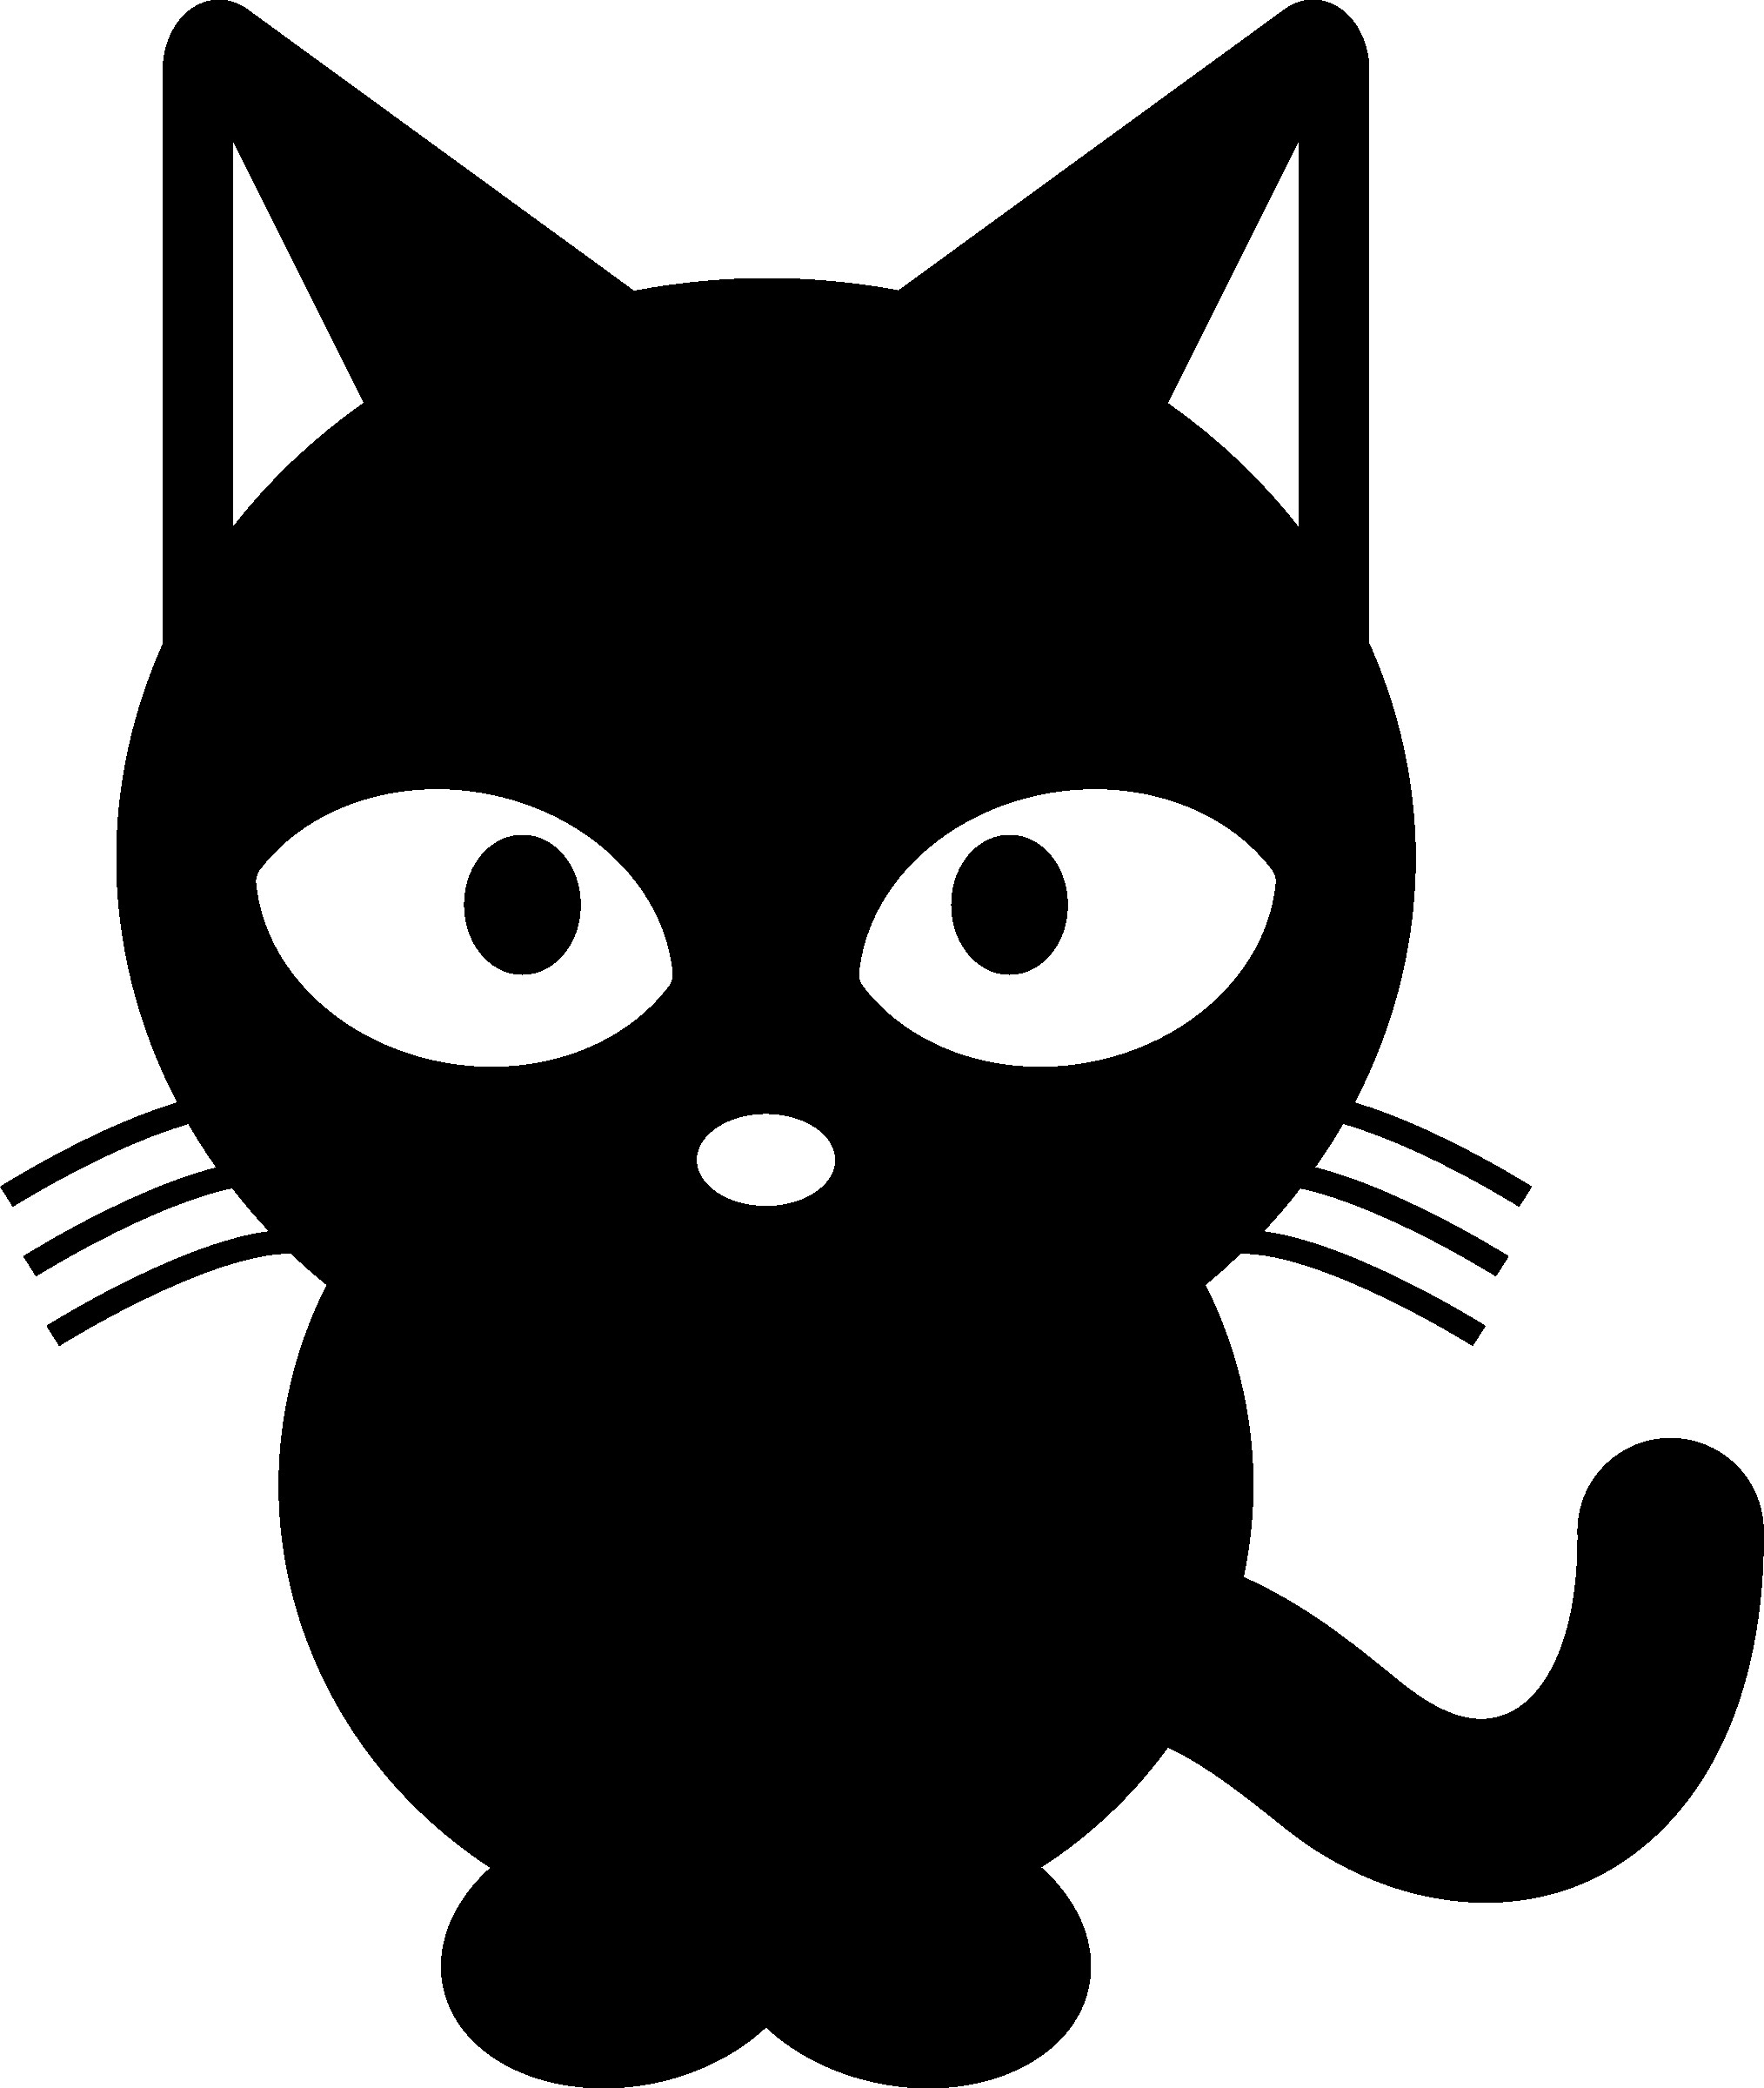 Cat black and white. Cats clipart post